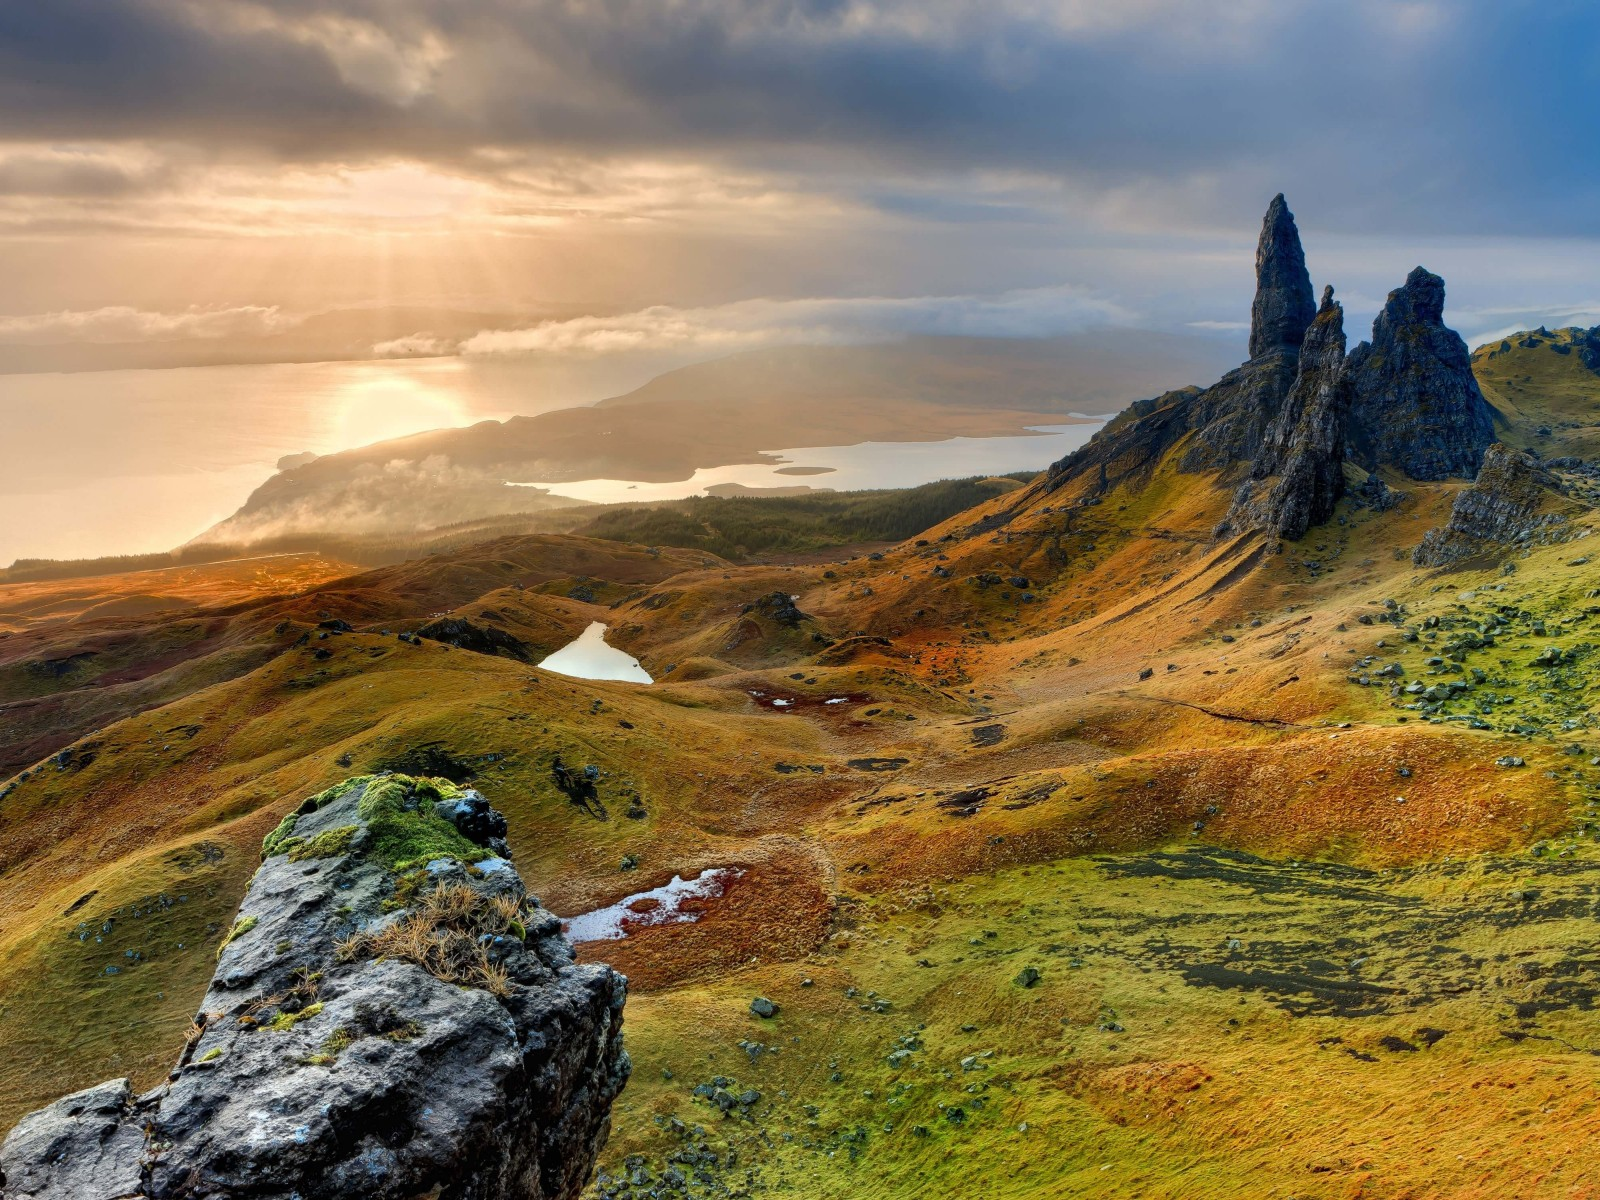 The Old Man of Storr, Isle of Skye, Scotland Wallpaper for Desktop 1600x1200